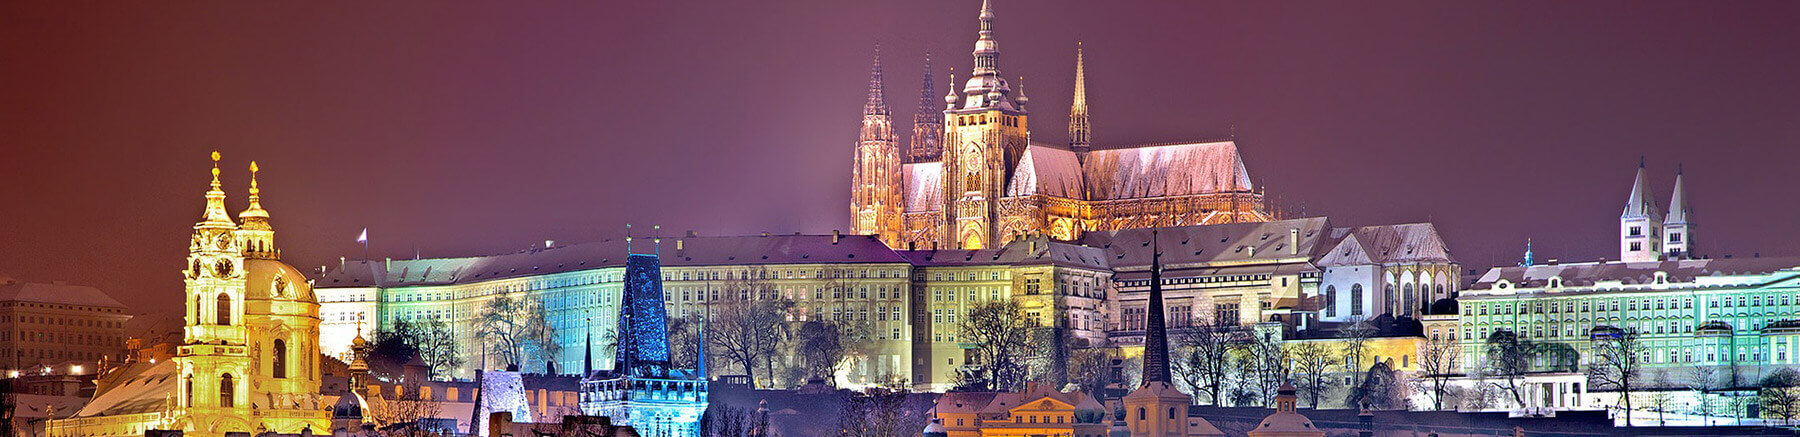 Photo of Prague by night featuring Prague Castle